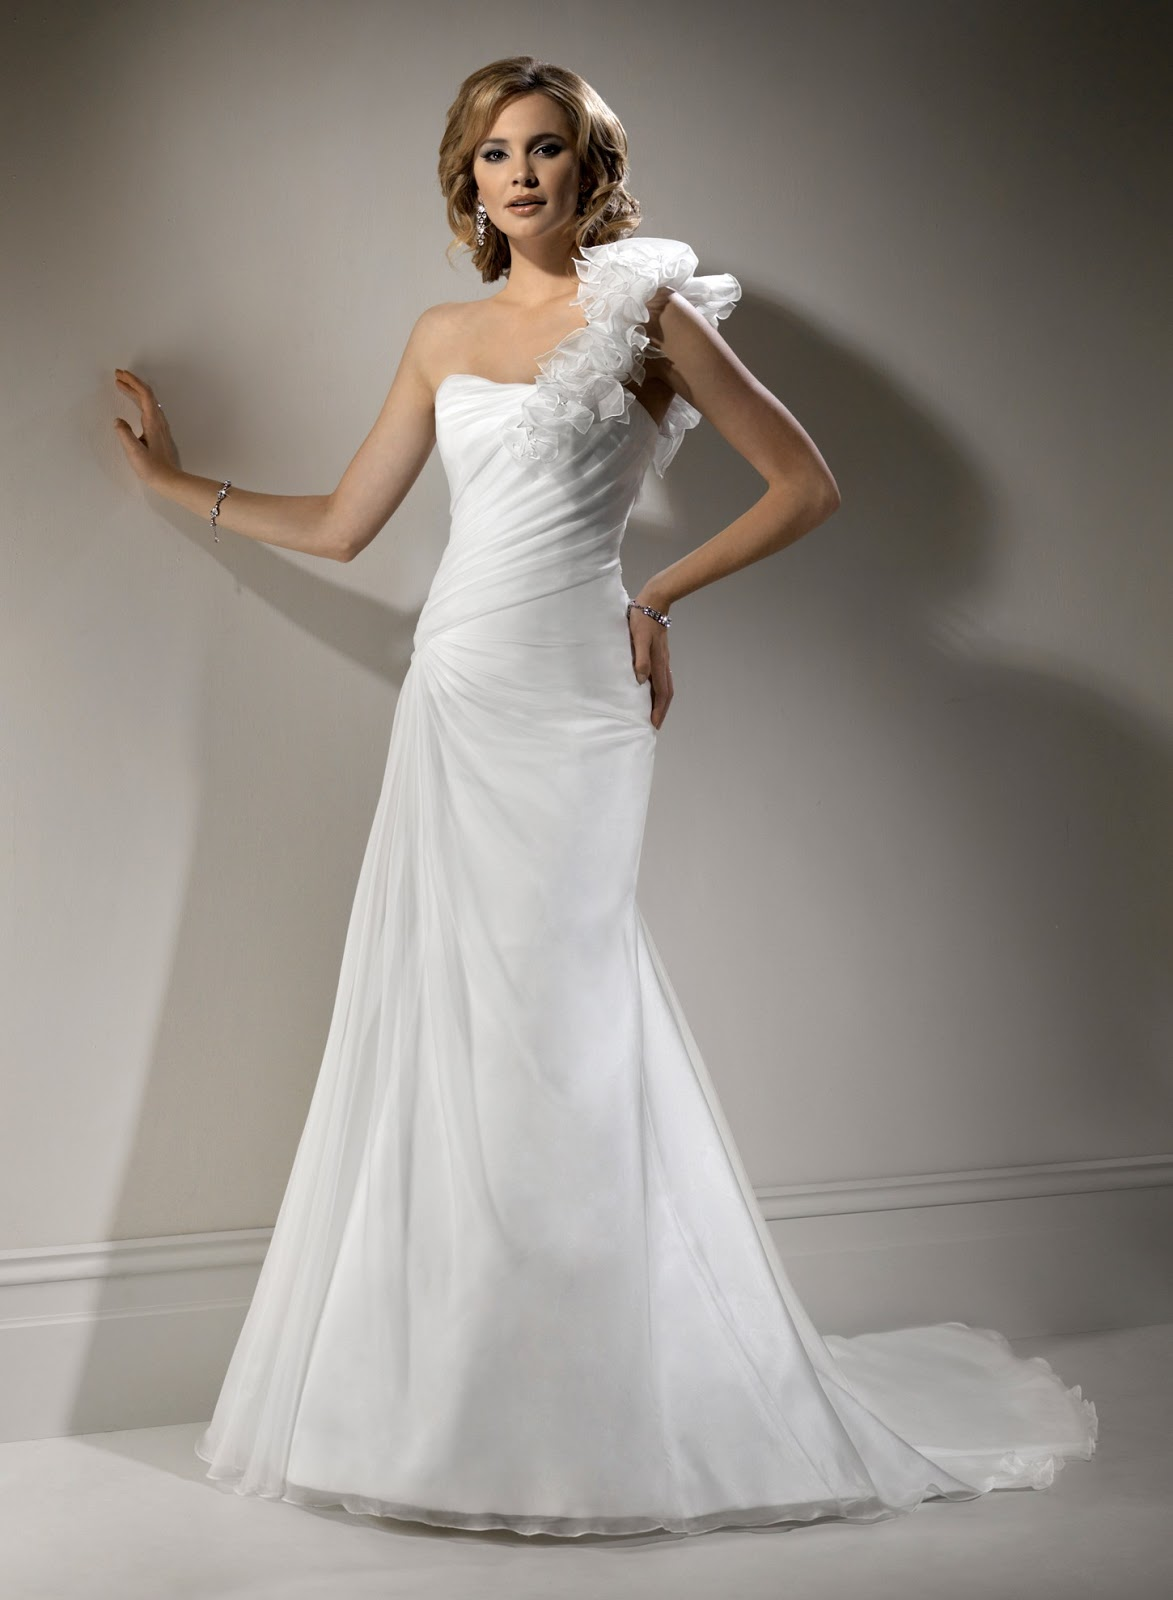 Blog for dress shopping wear tight fitting wedding gowns for Wedding dresses made in uk